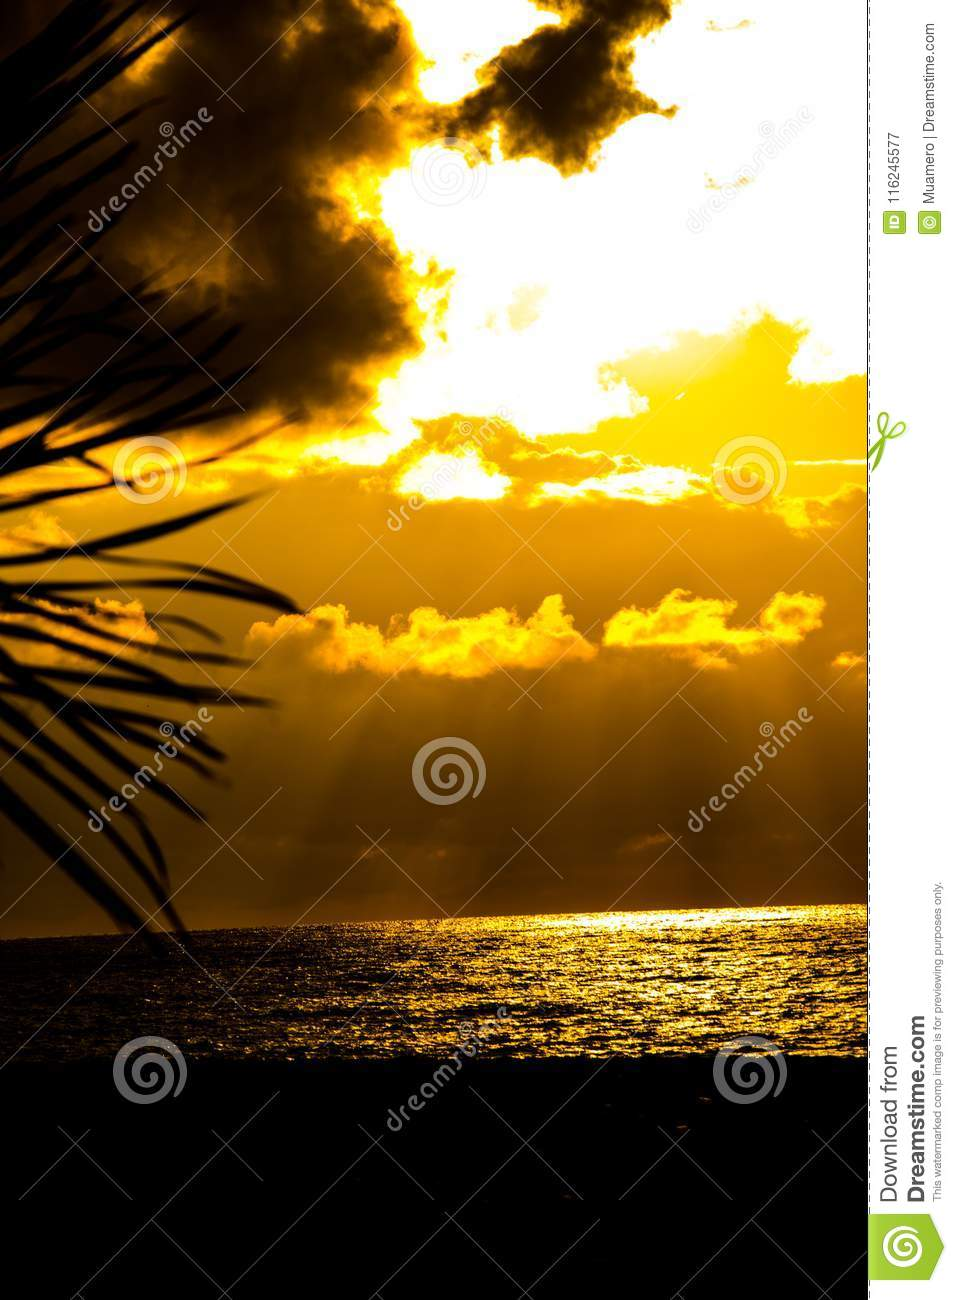 Download Wonderful Sunset Above The Black Sea Looking From The Coast Stock Image - Image of sand, famous: 116245577